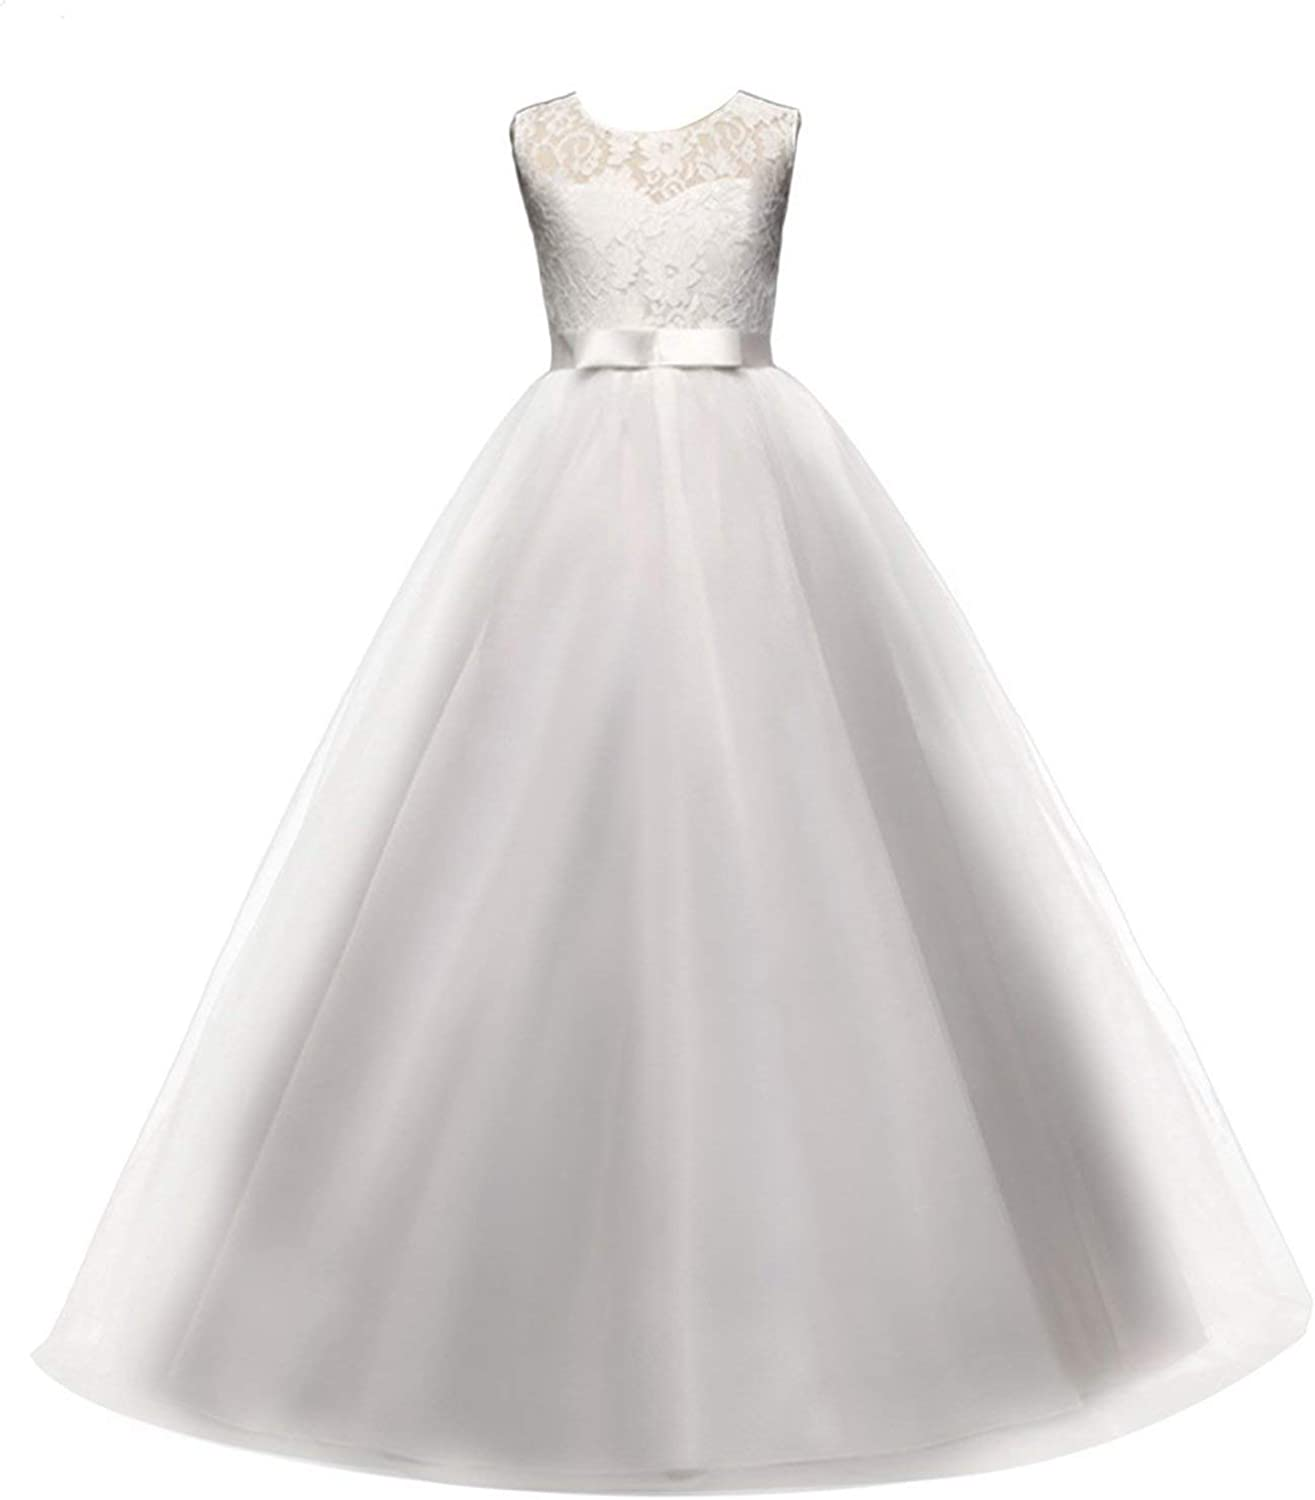 Girls Ball Gown Dress Wedding Princess Bridesmaid Party Prom Birthday for Kids 5-13 Years Old